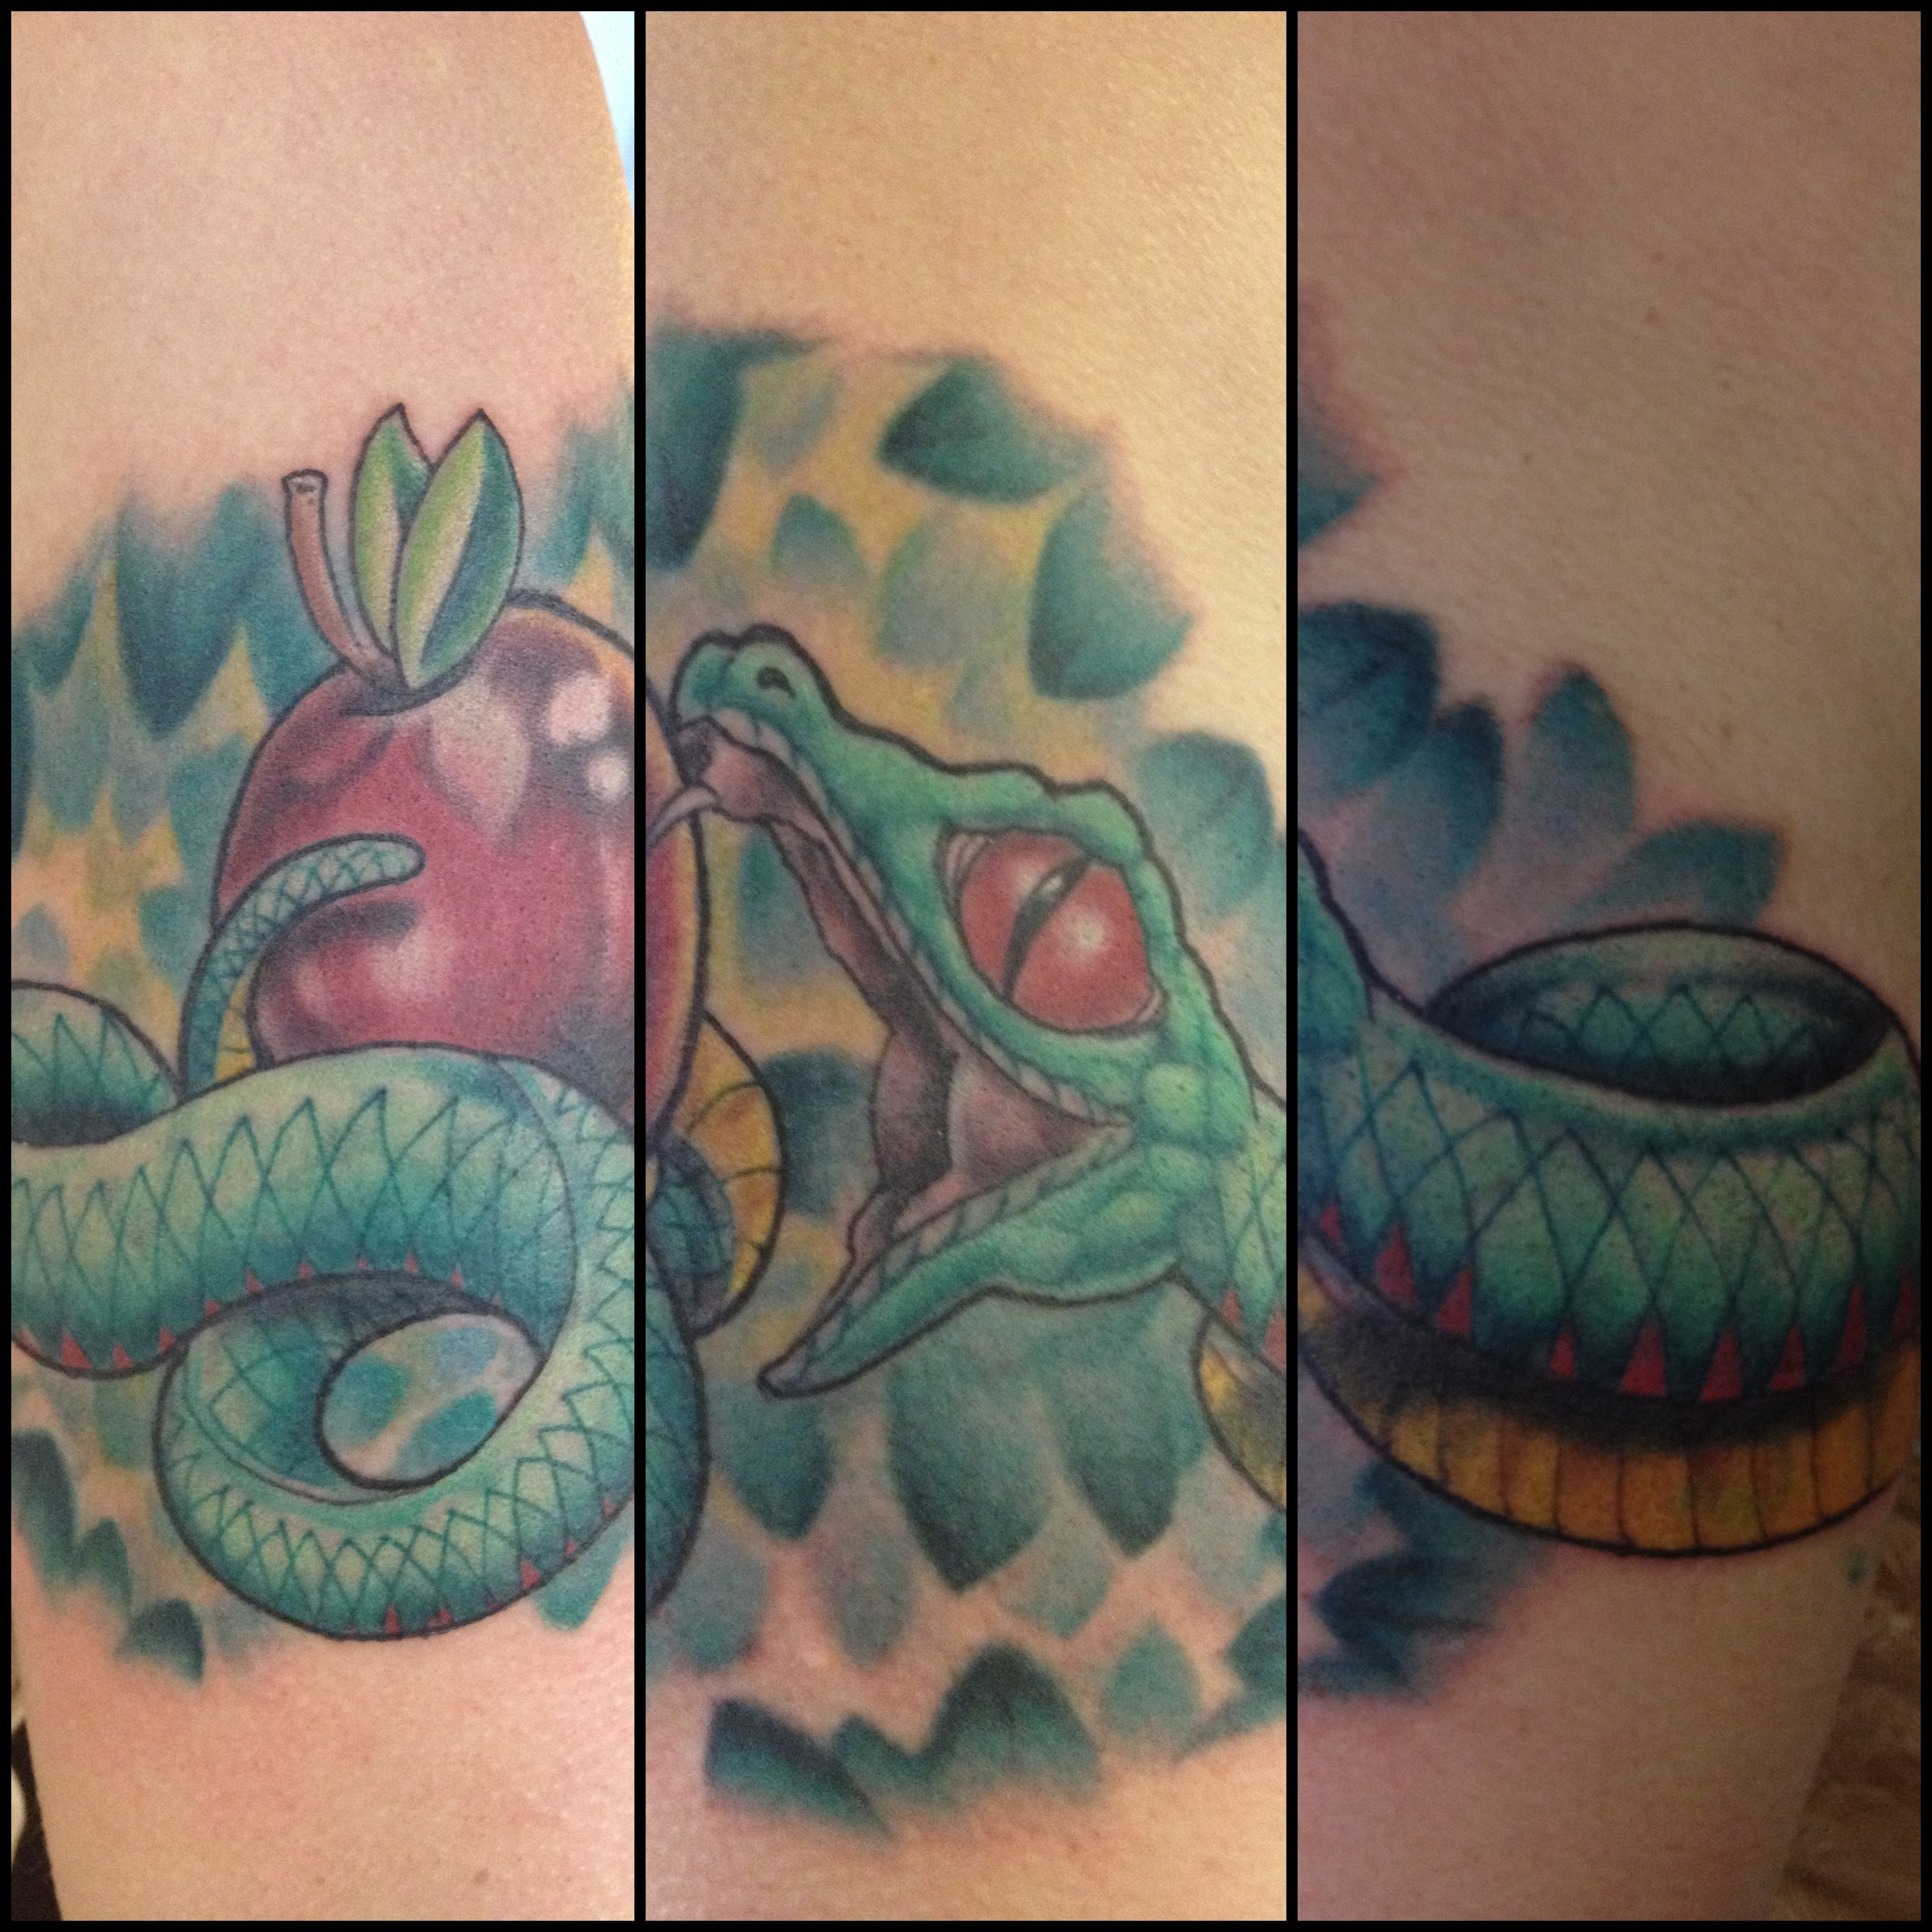 At albatross tattoo pictures to pin on pinterest for Garden of eden tattoo designs